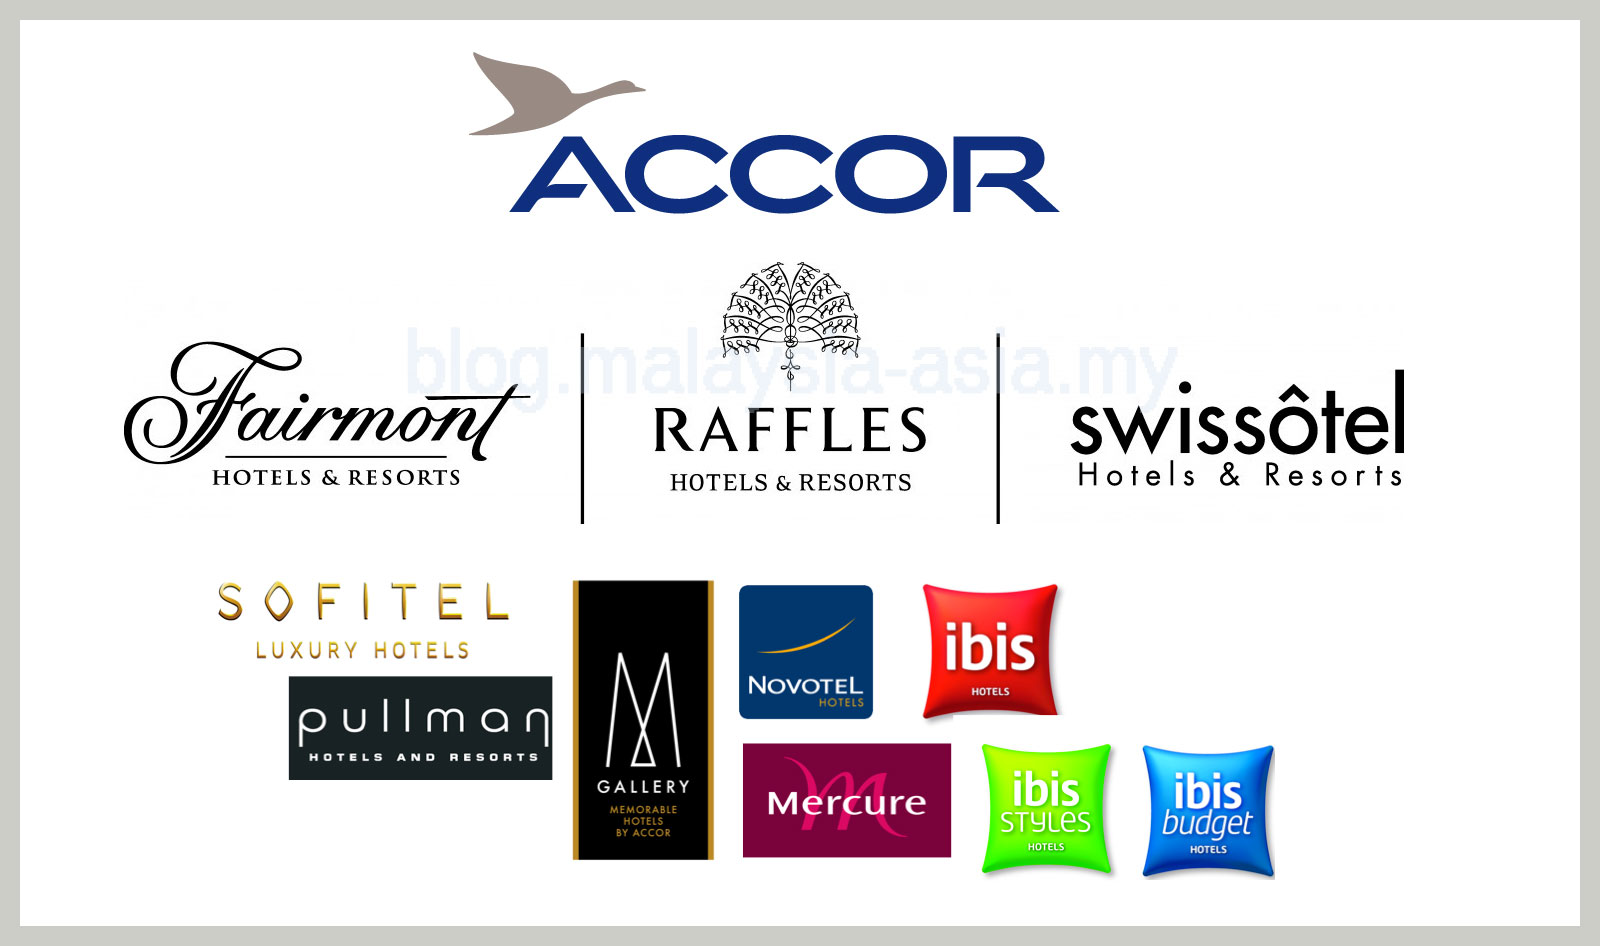 how to close accor account